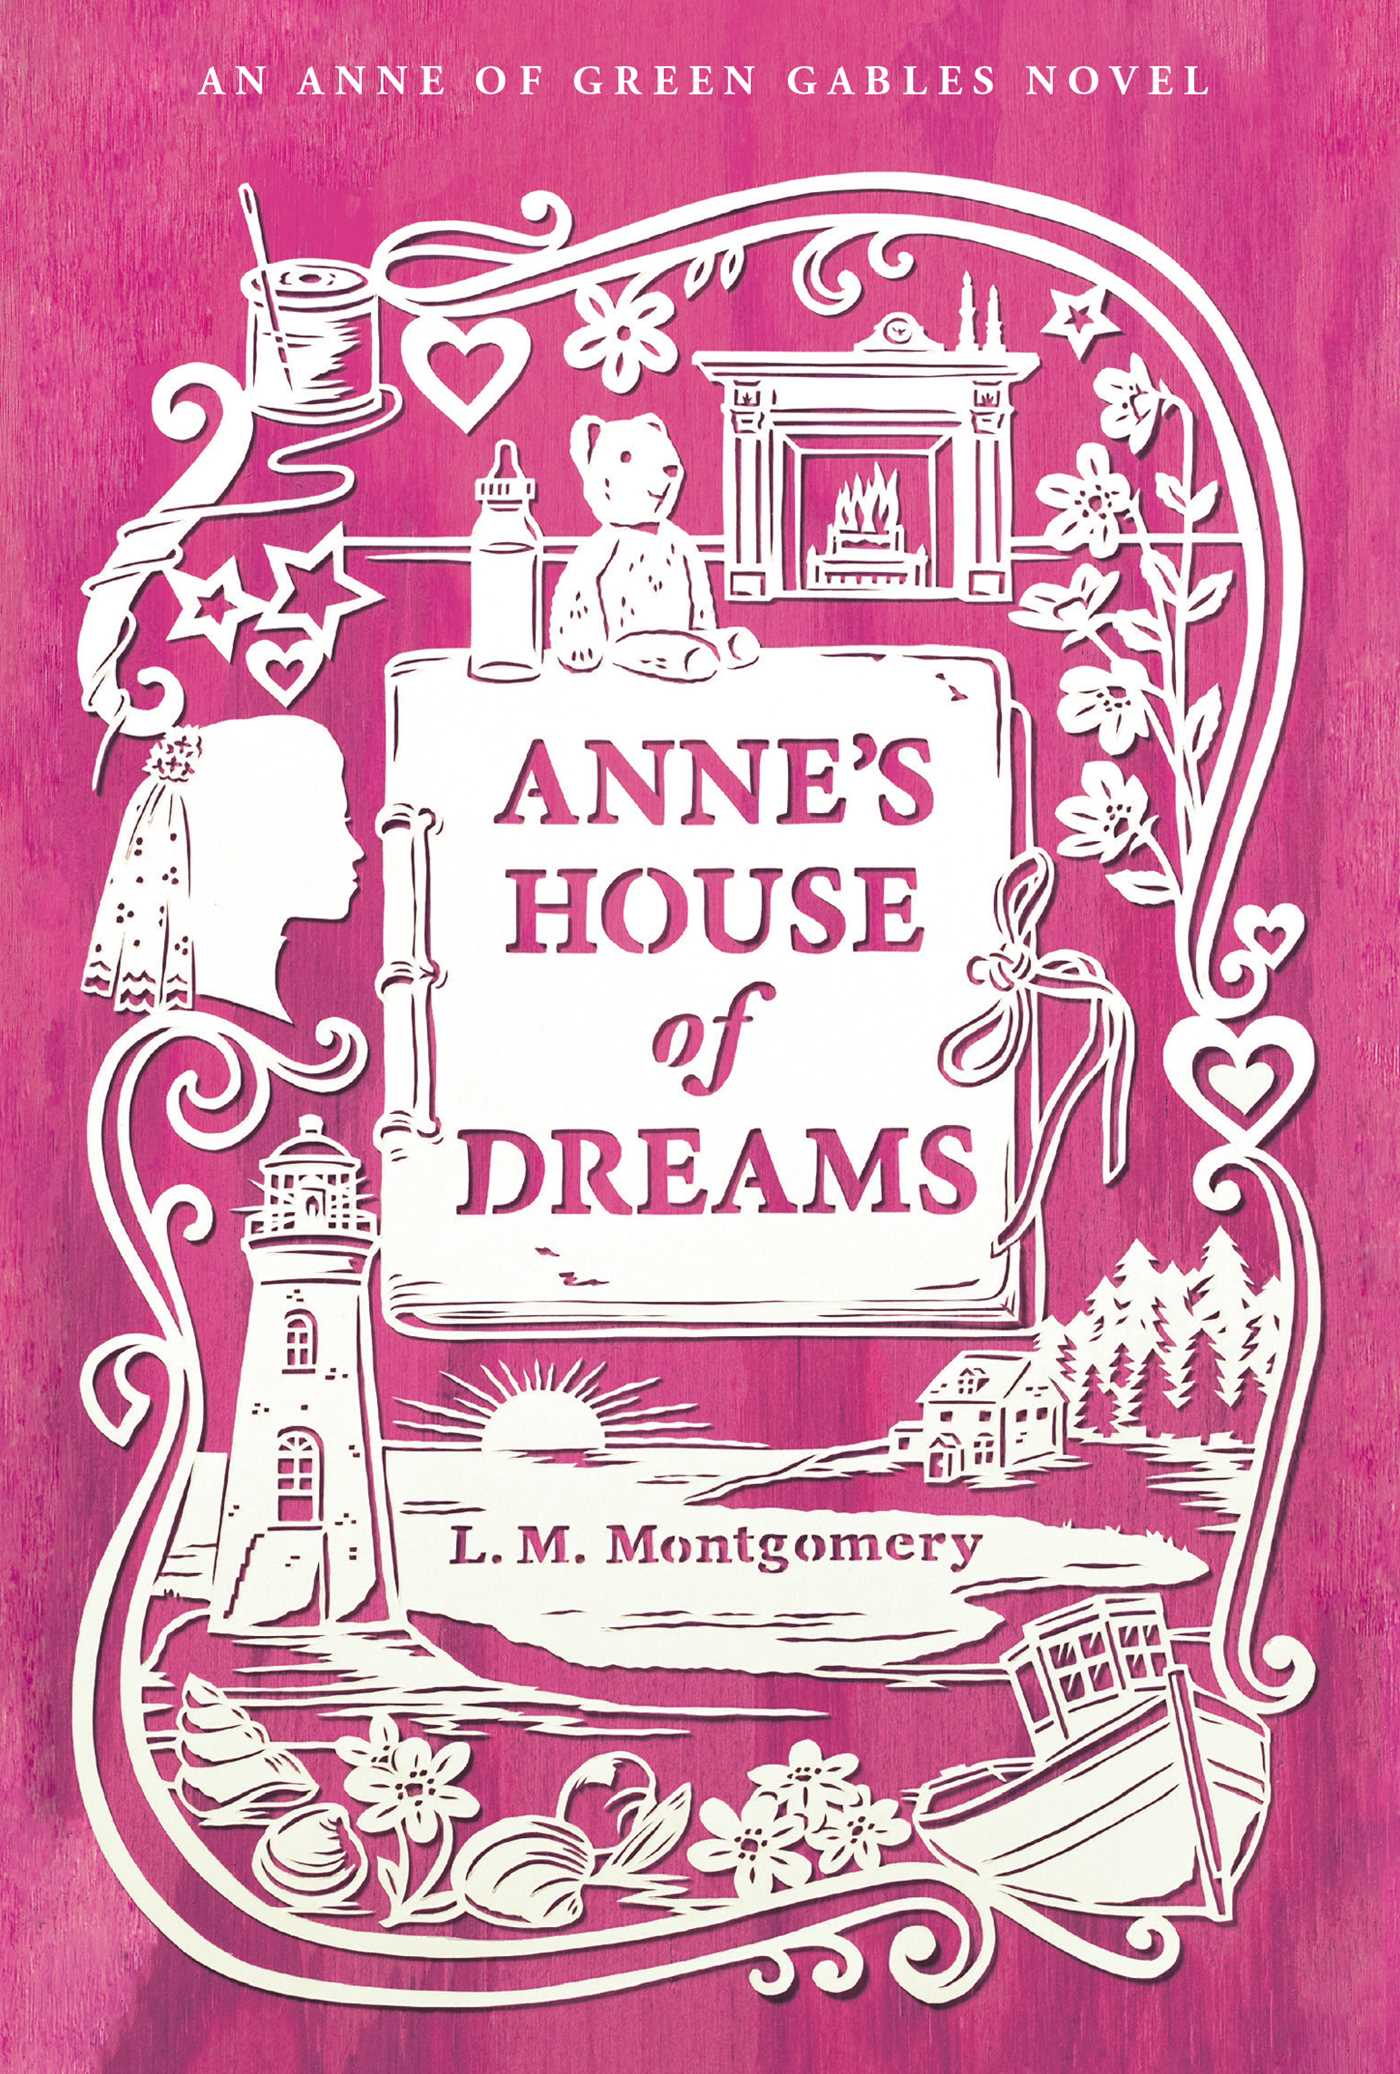 anne of green gables by montgomery annes identity I fell in love anne shirley, the freckled, red-headed heroine of lucy maud montgomery's anne of green gables, when i was 10 years old.